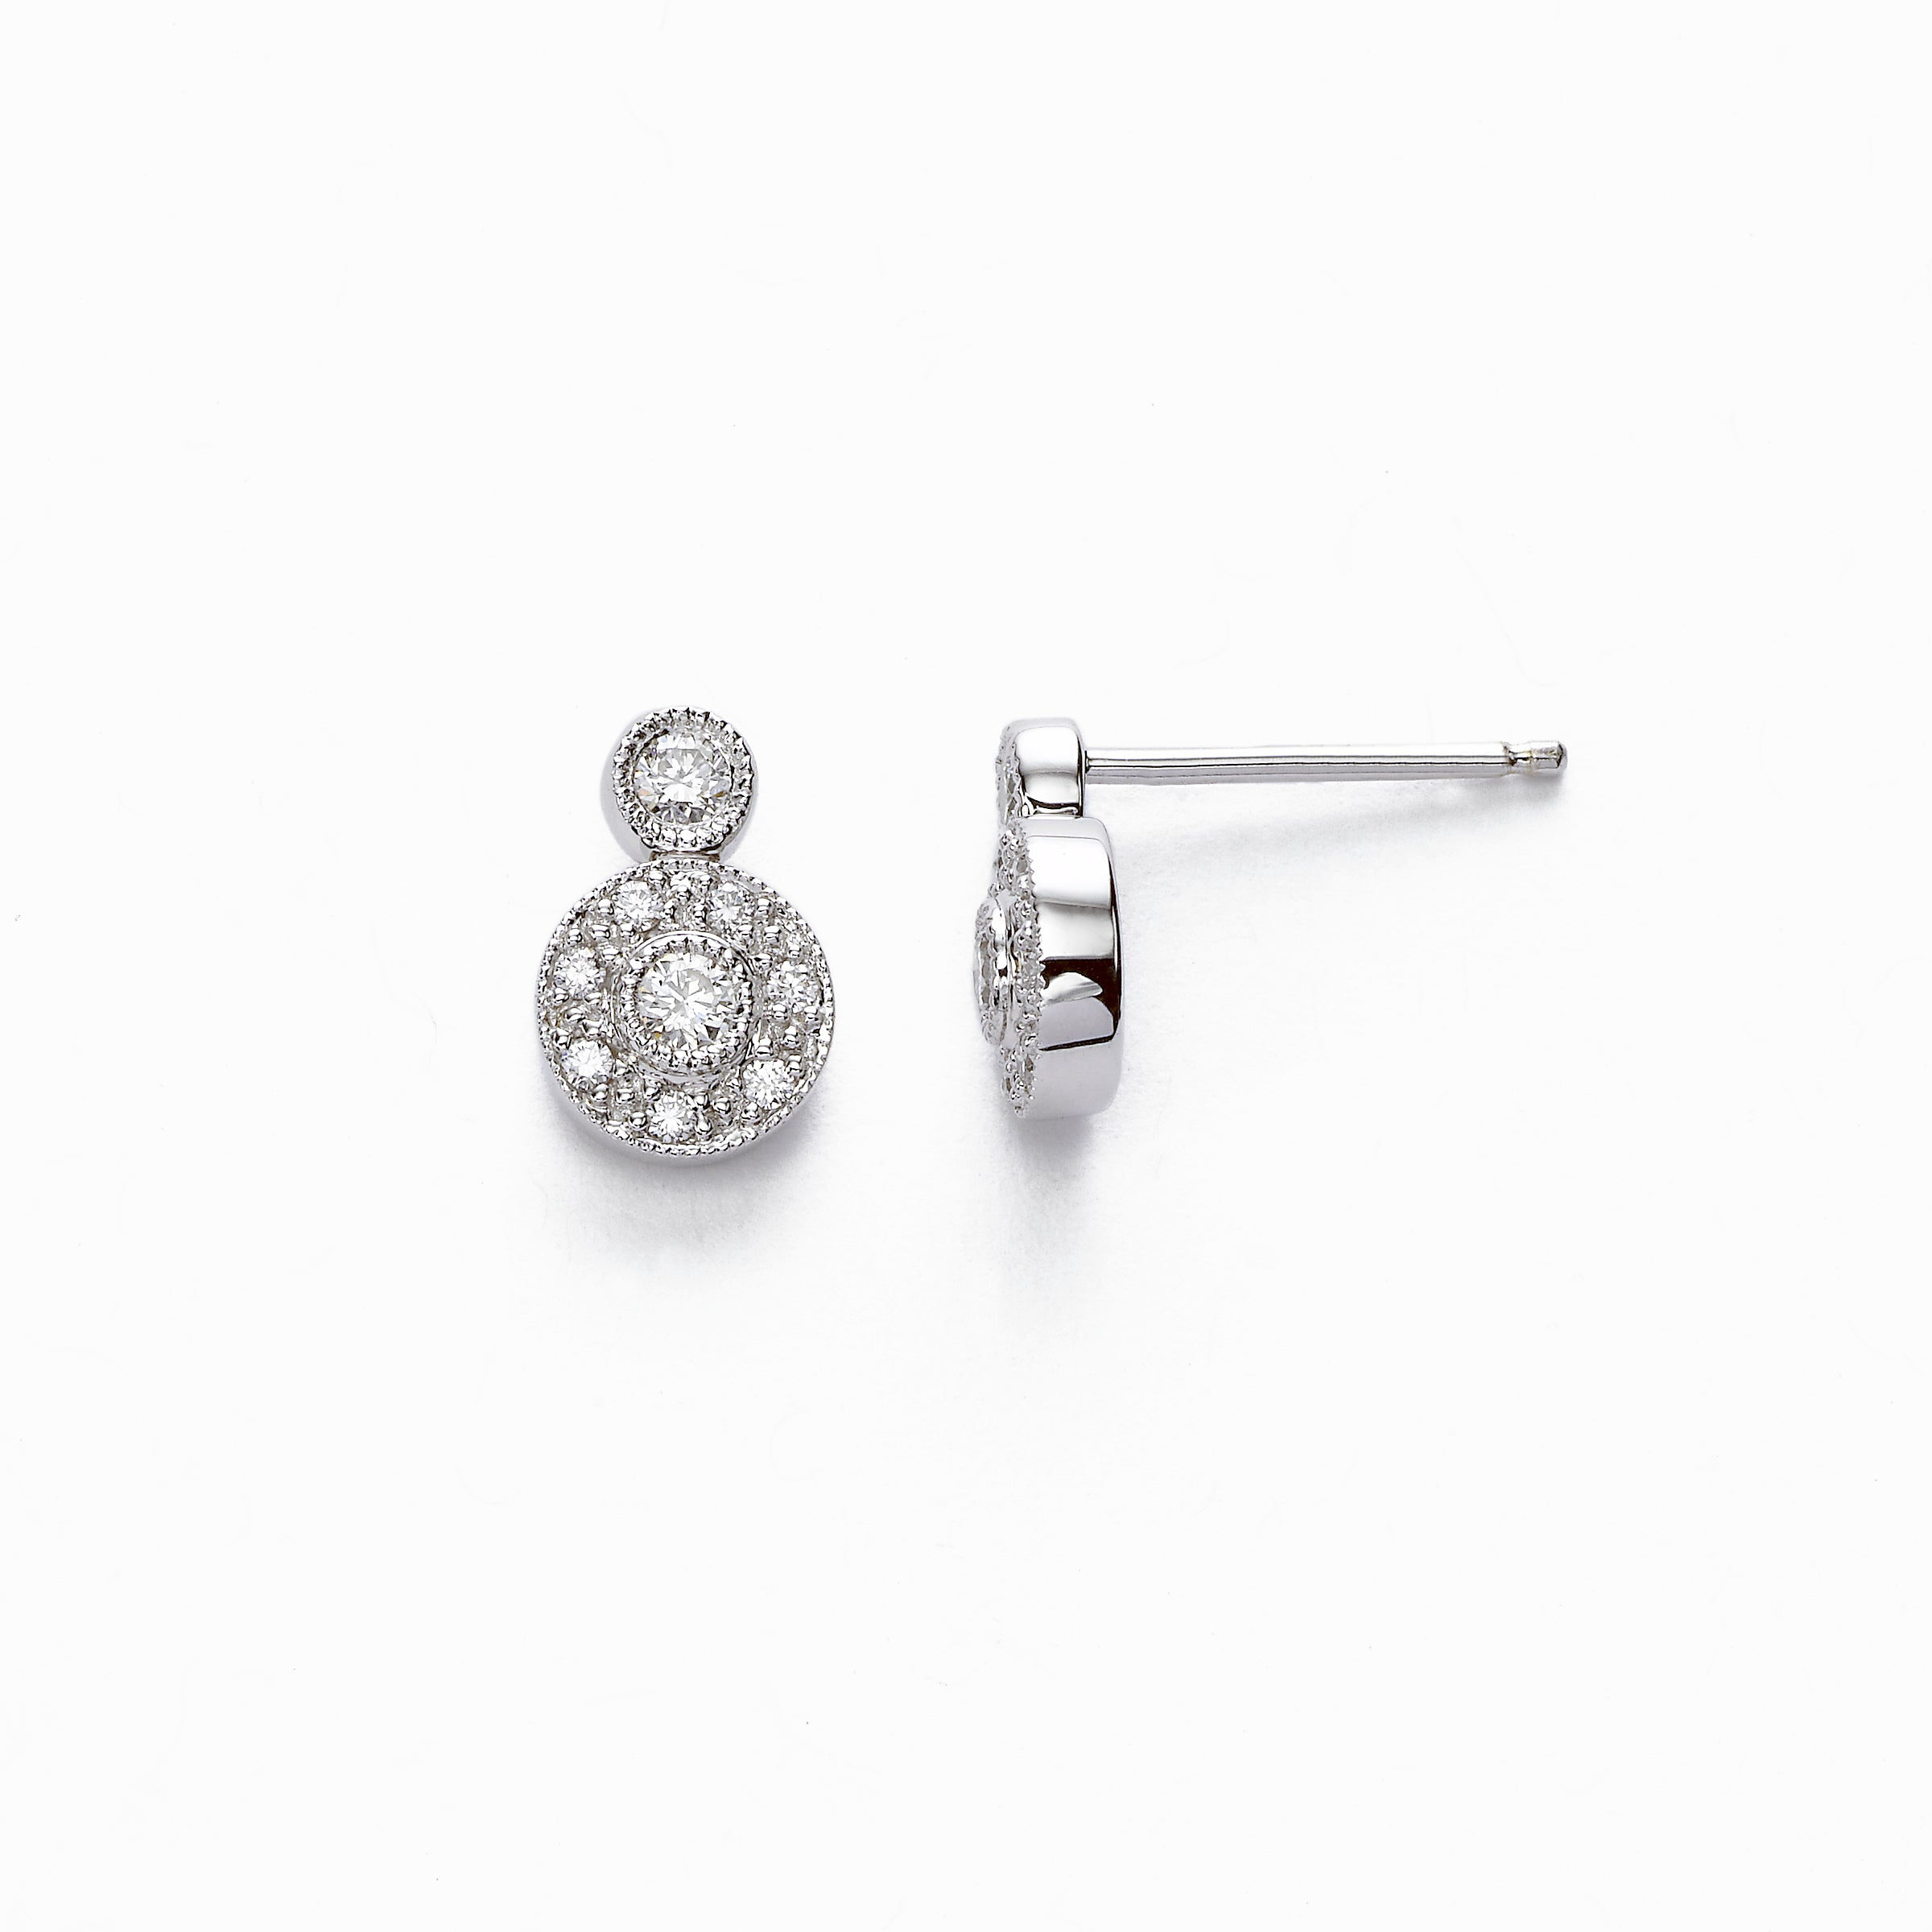 Vintage Look Pave Diamond Petite Earring, .29 Carat, 14K White Gold